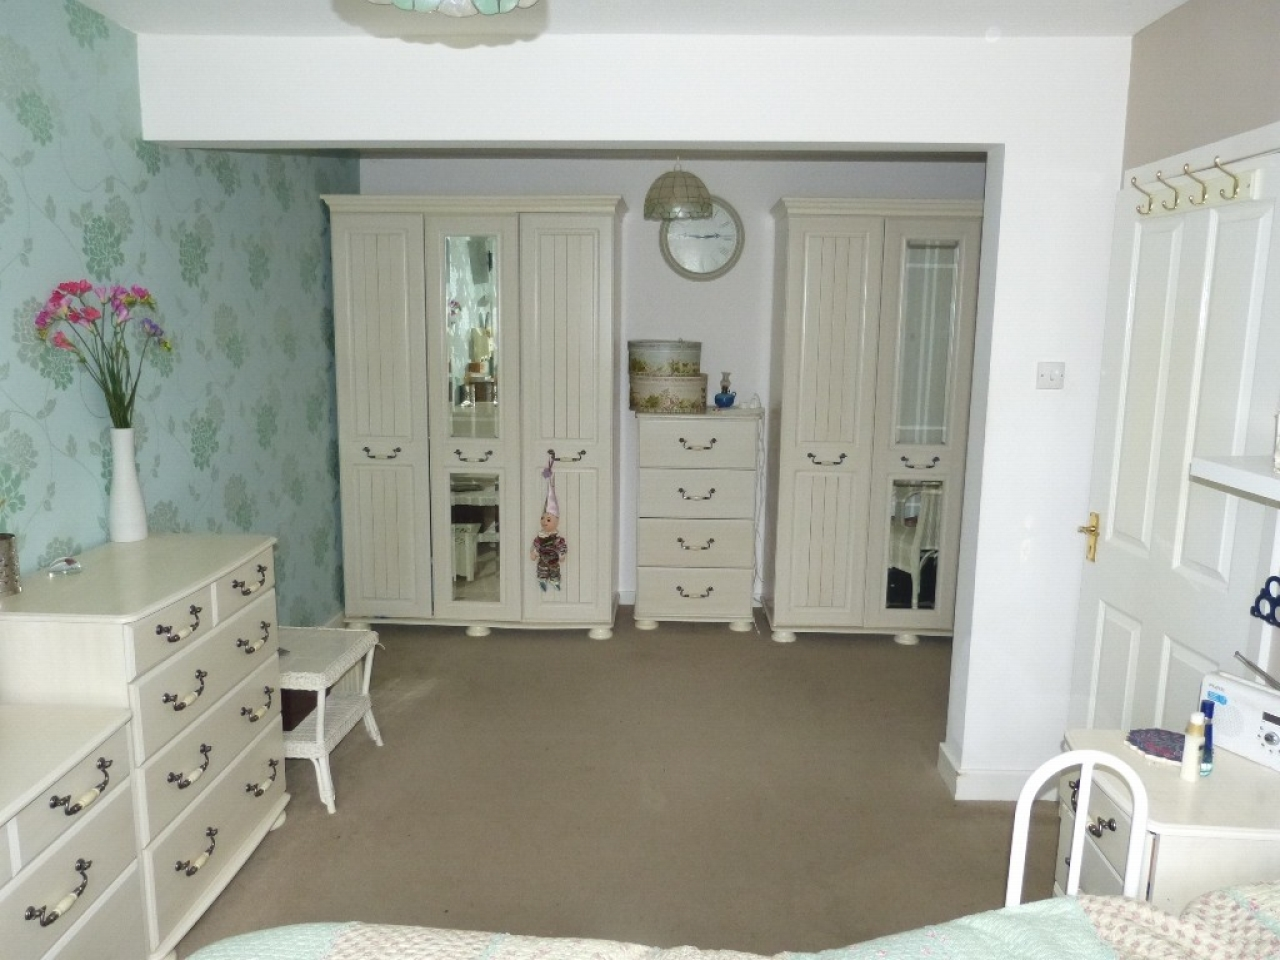 4 bedroom detached bungalow SSTC in Abergele - Photograph 12